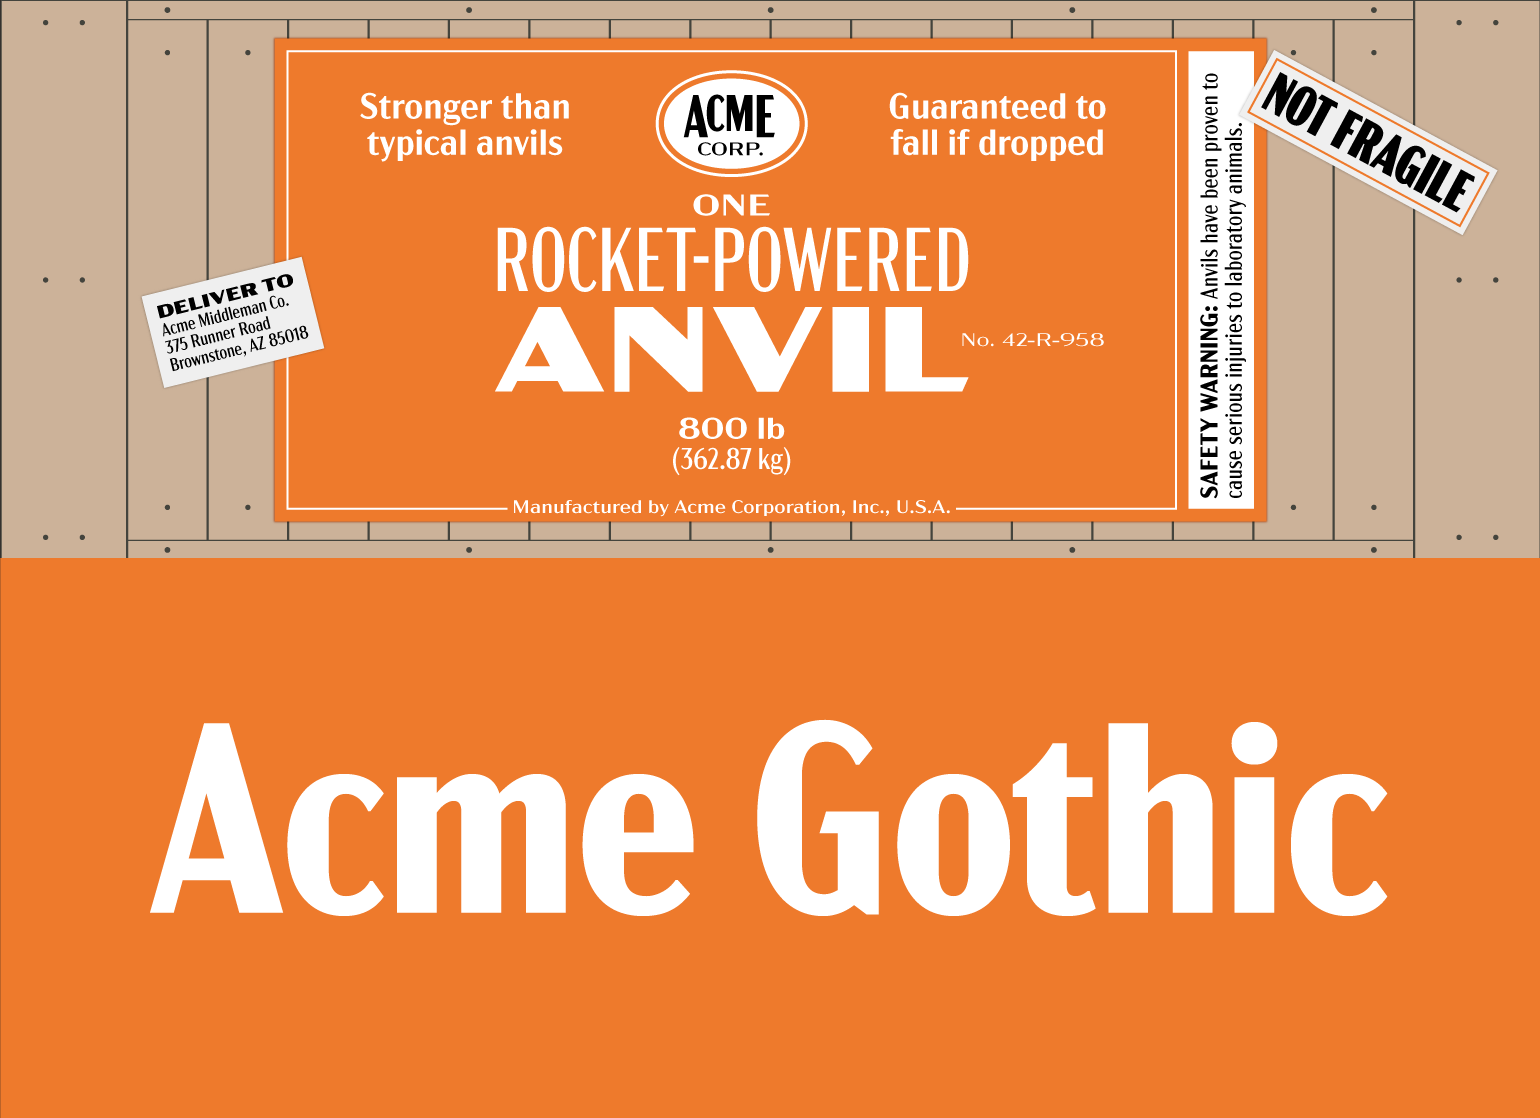 Acmegothic_banner_sample_1540_copy